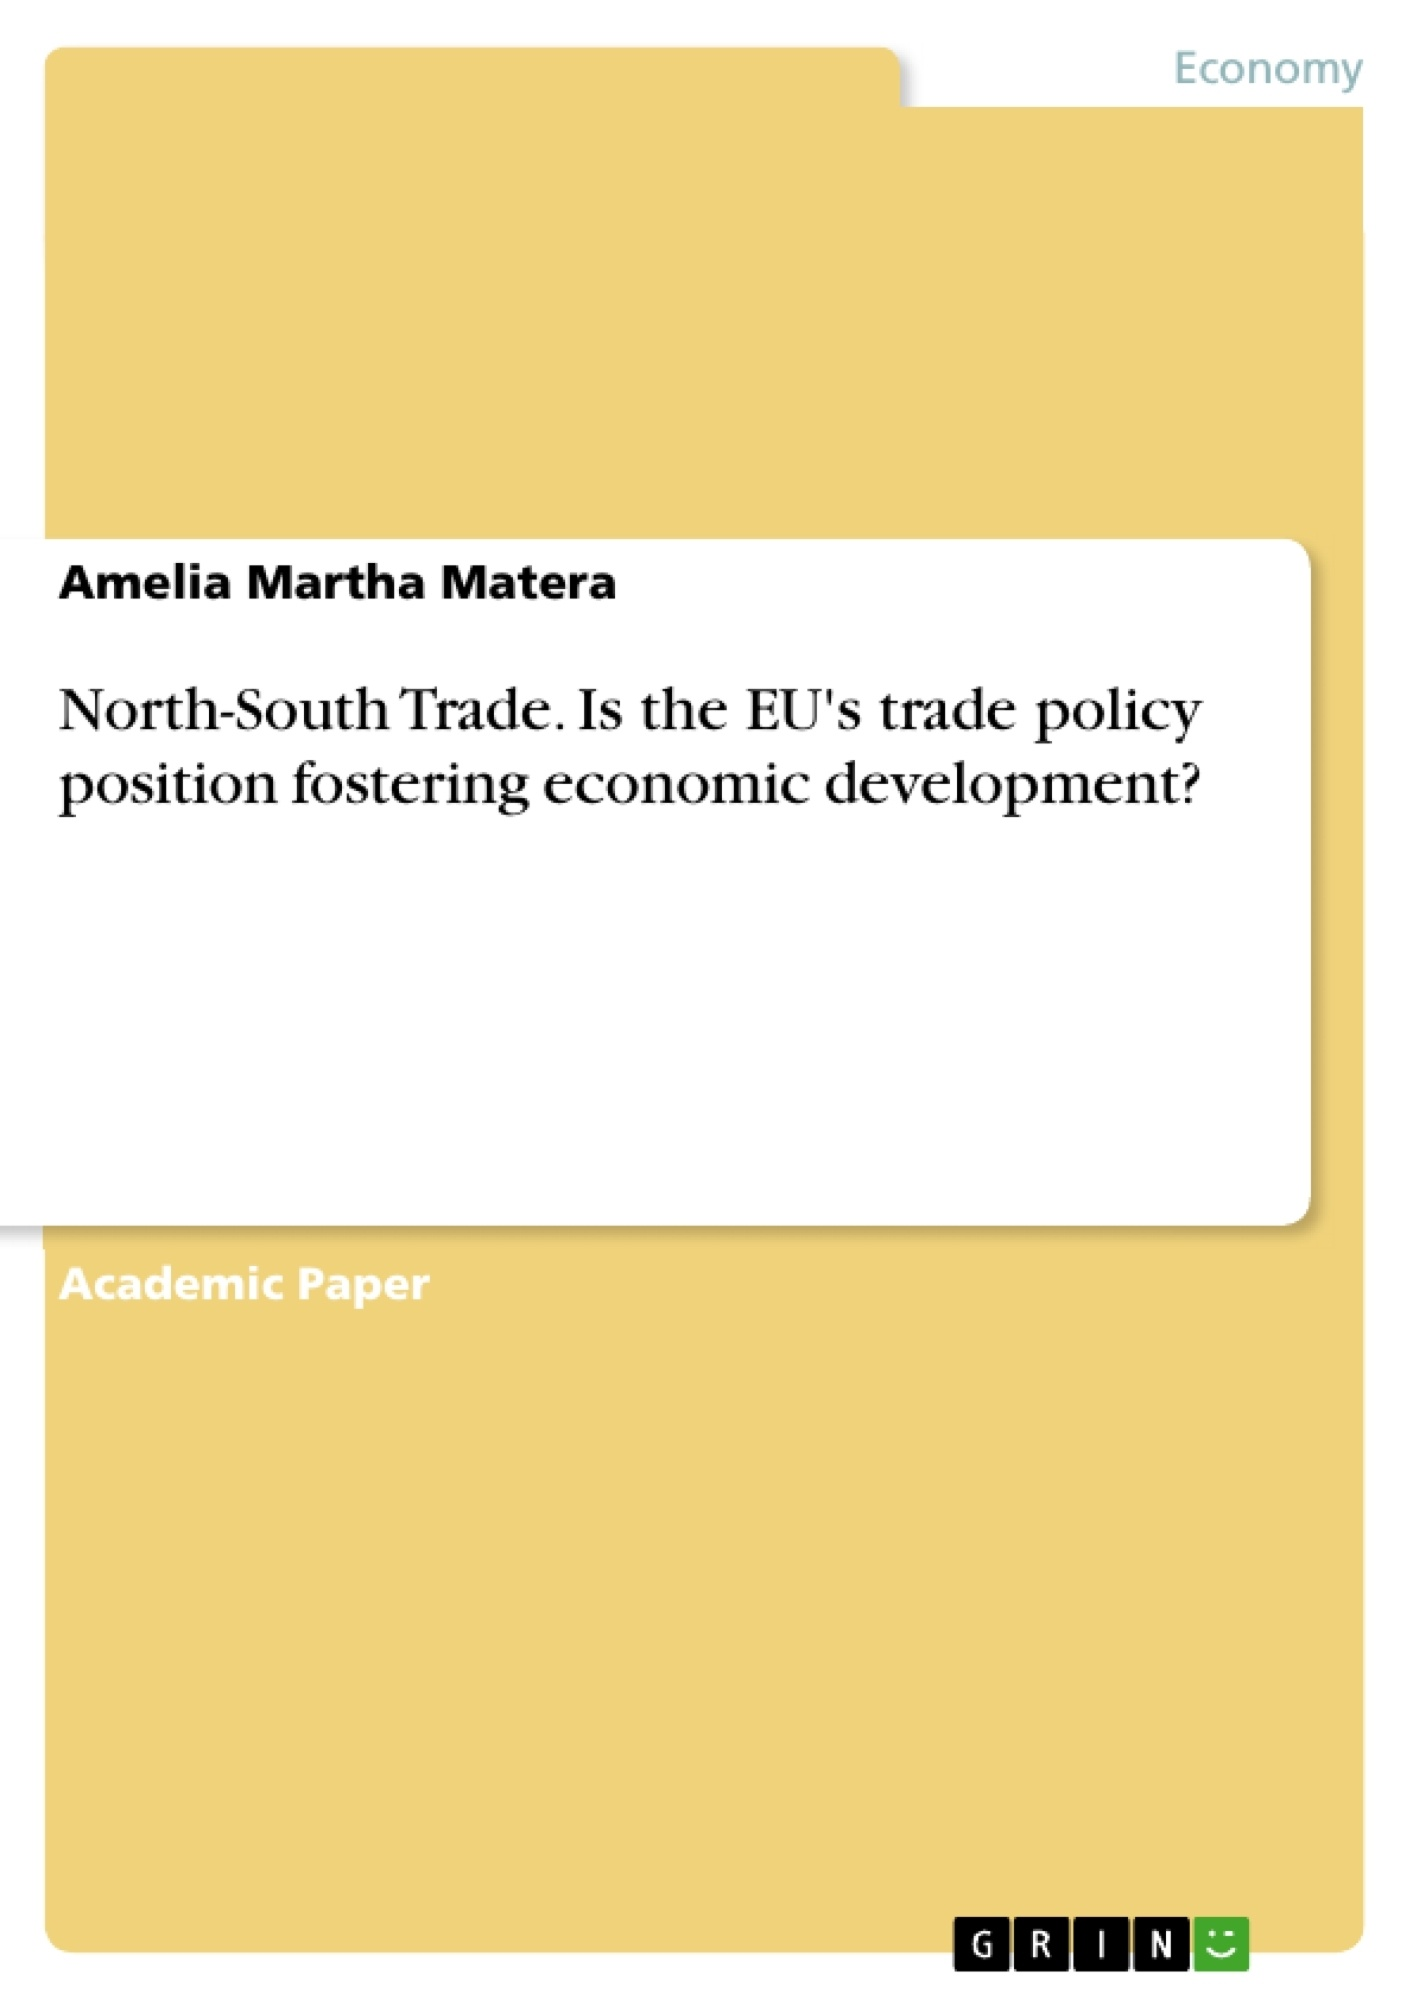 Title: North-South Trade. Is the EU's trade policy position fostering economic development?